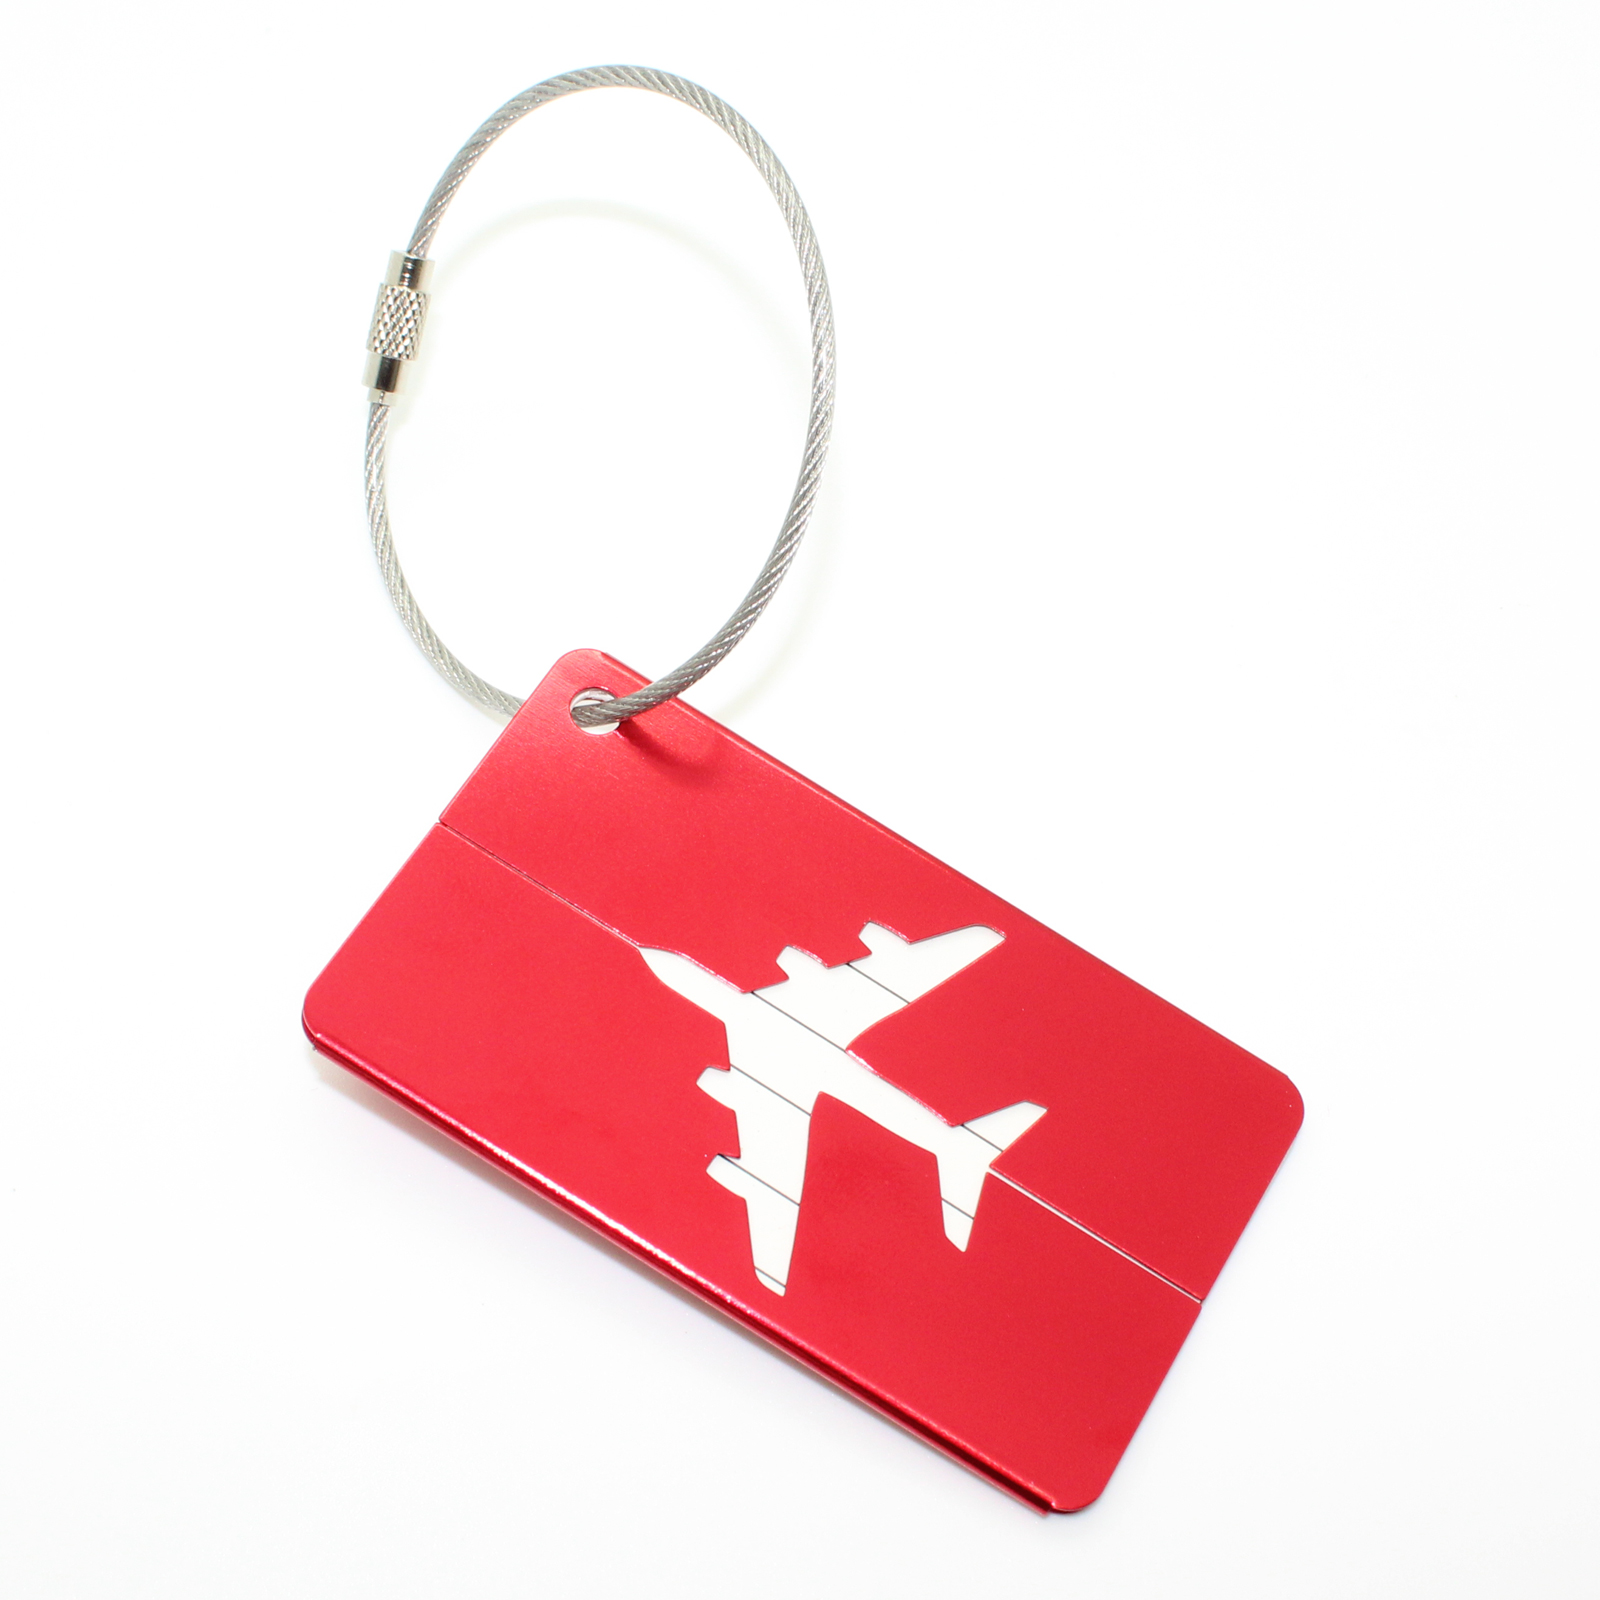 7f86588a8b25 Travel Luggage Aluminum ID Suitcase Red Tags - SET OF 2